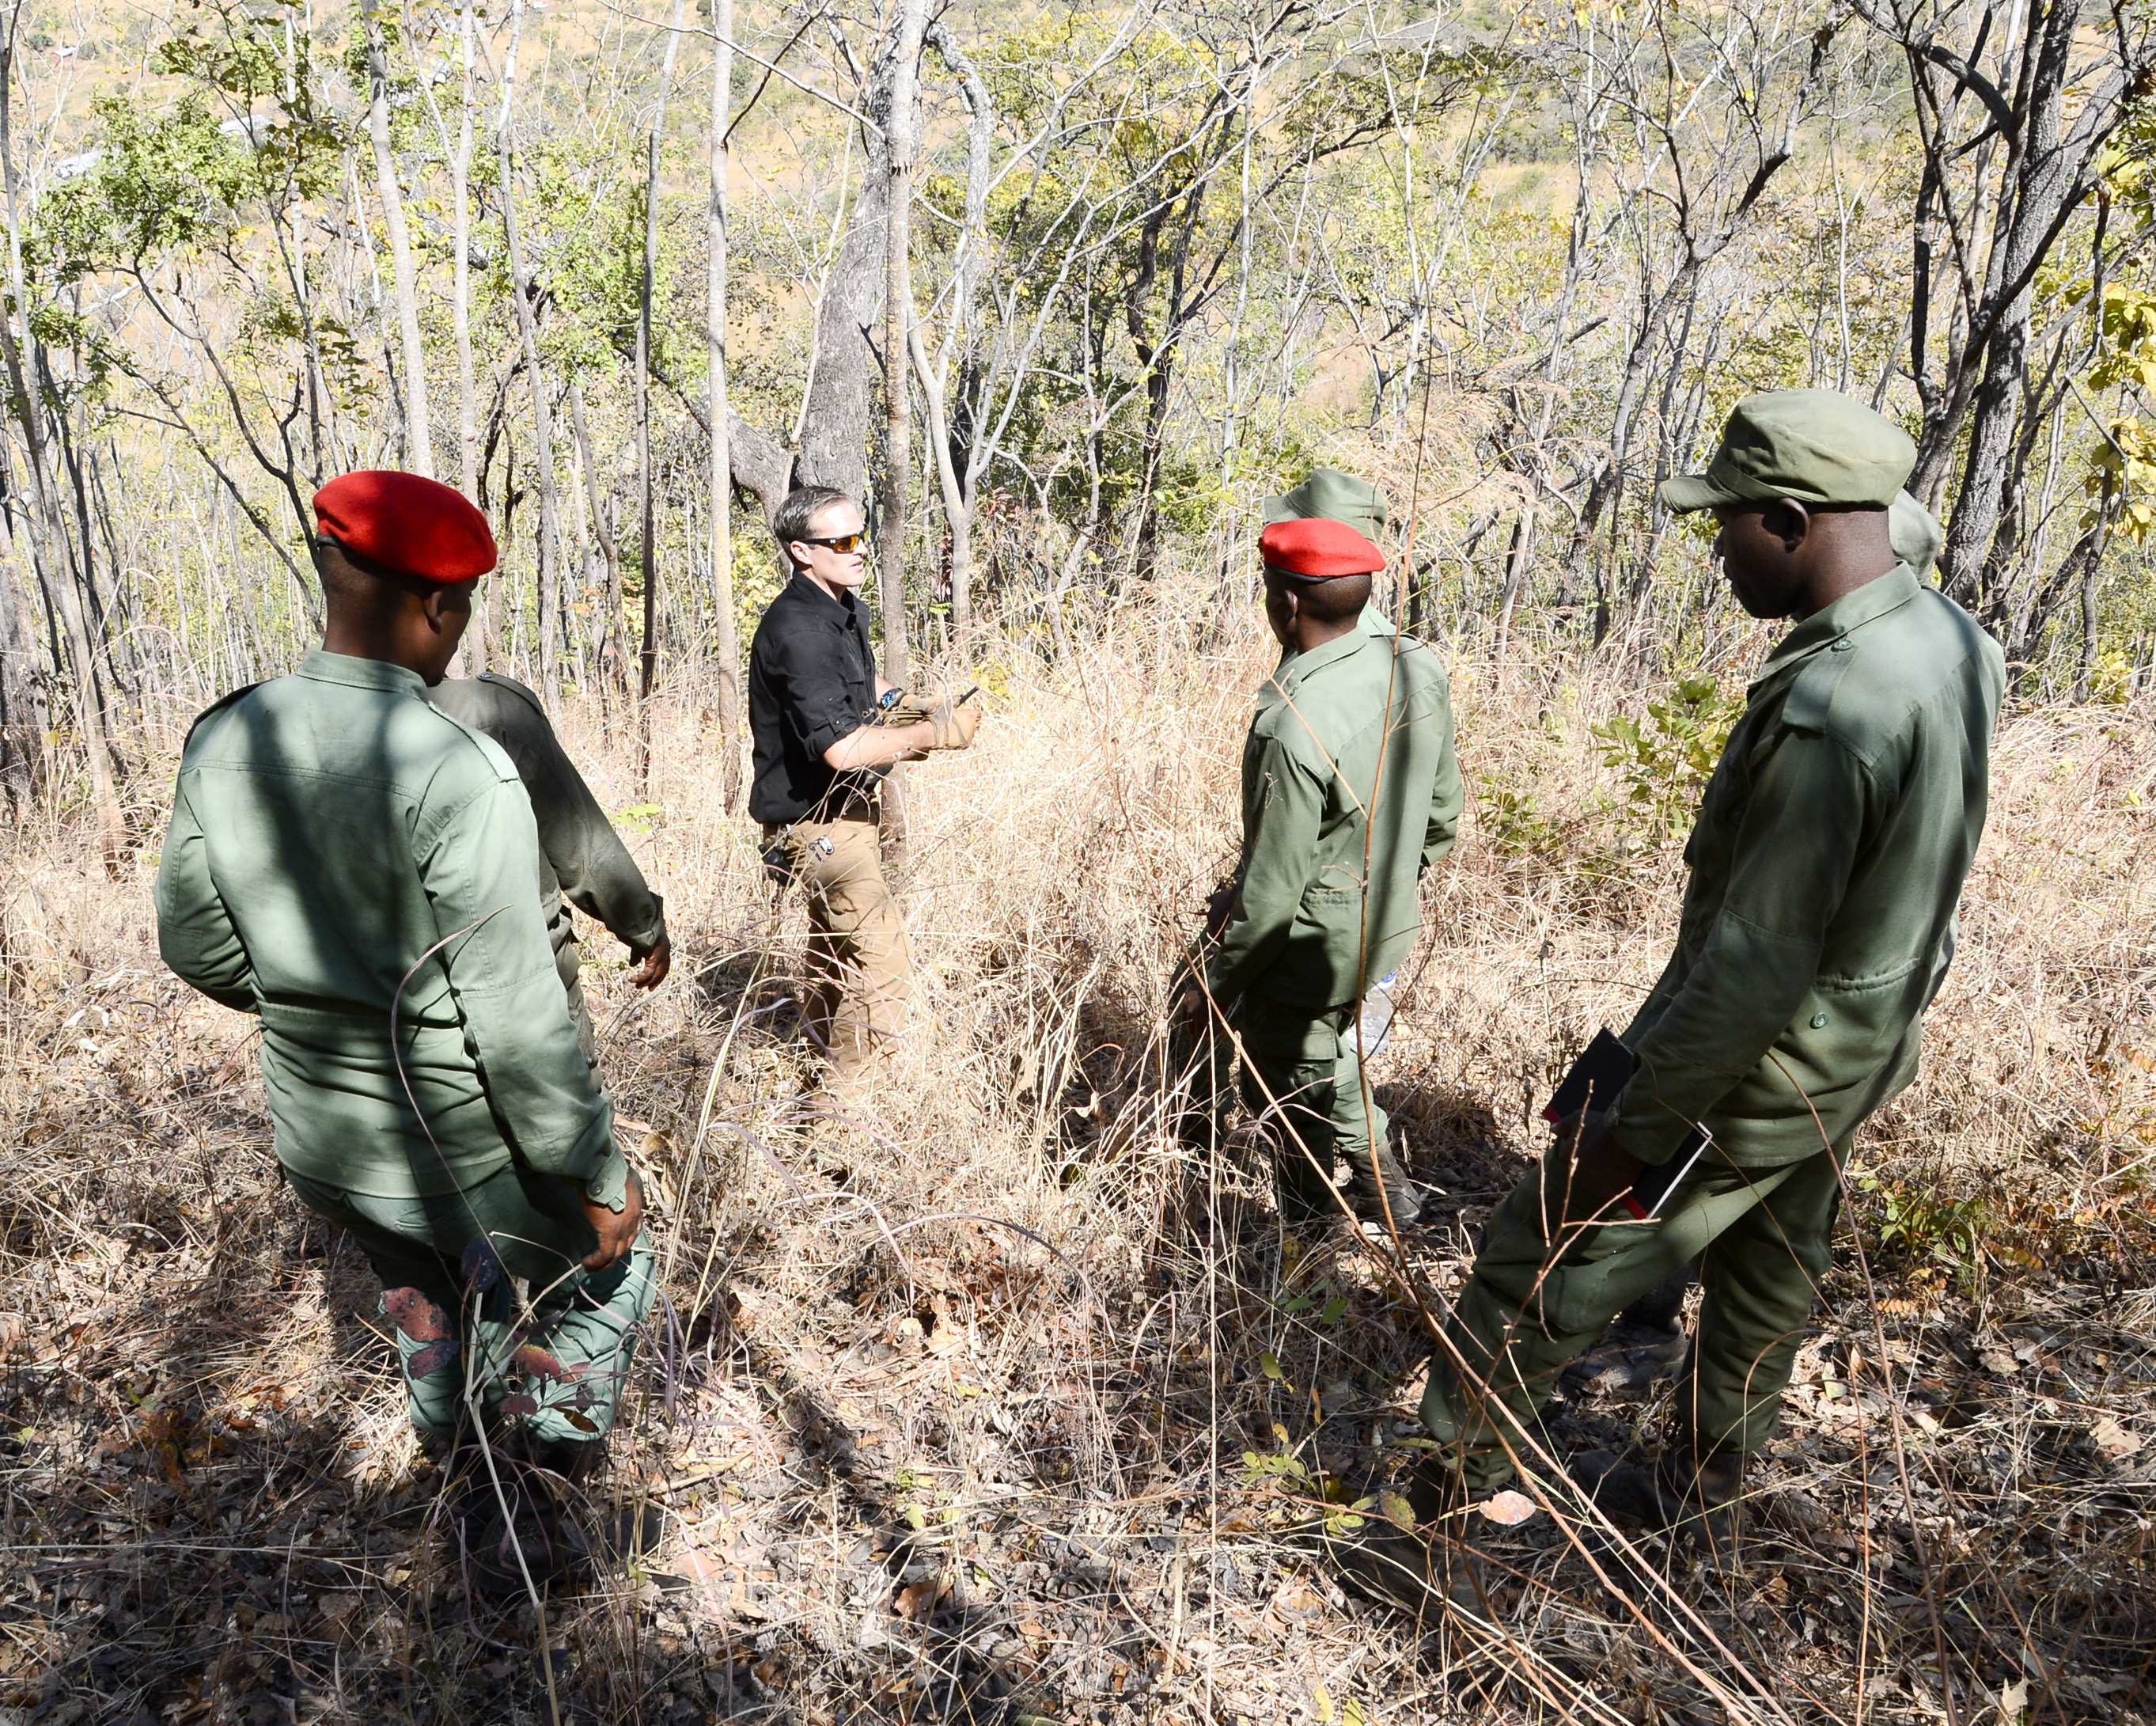 U.S. Army Sgt. Matthew Smith, with the 404th Civil Affairs Battalion, assigned to Combined Joint Task Force-Horn of Africa provides guidance during a practical exercise in ground reconnaissance for Tanzania Wildlife Management Authority (TAWA) patrol game wardens during a Counter Illicit Trafficking course, in Ngwala, Tanzania, July 24, 2018. The course, provided the 404th Civil Affairs Battalion, is a month-long course to enhance TAWA's anti-poaching capabilities in Tanzania. (U.S. Navy Photo by Mass Communication Specialist 2nd Class Timothy M. Ahearn)